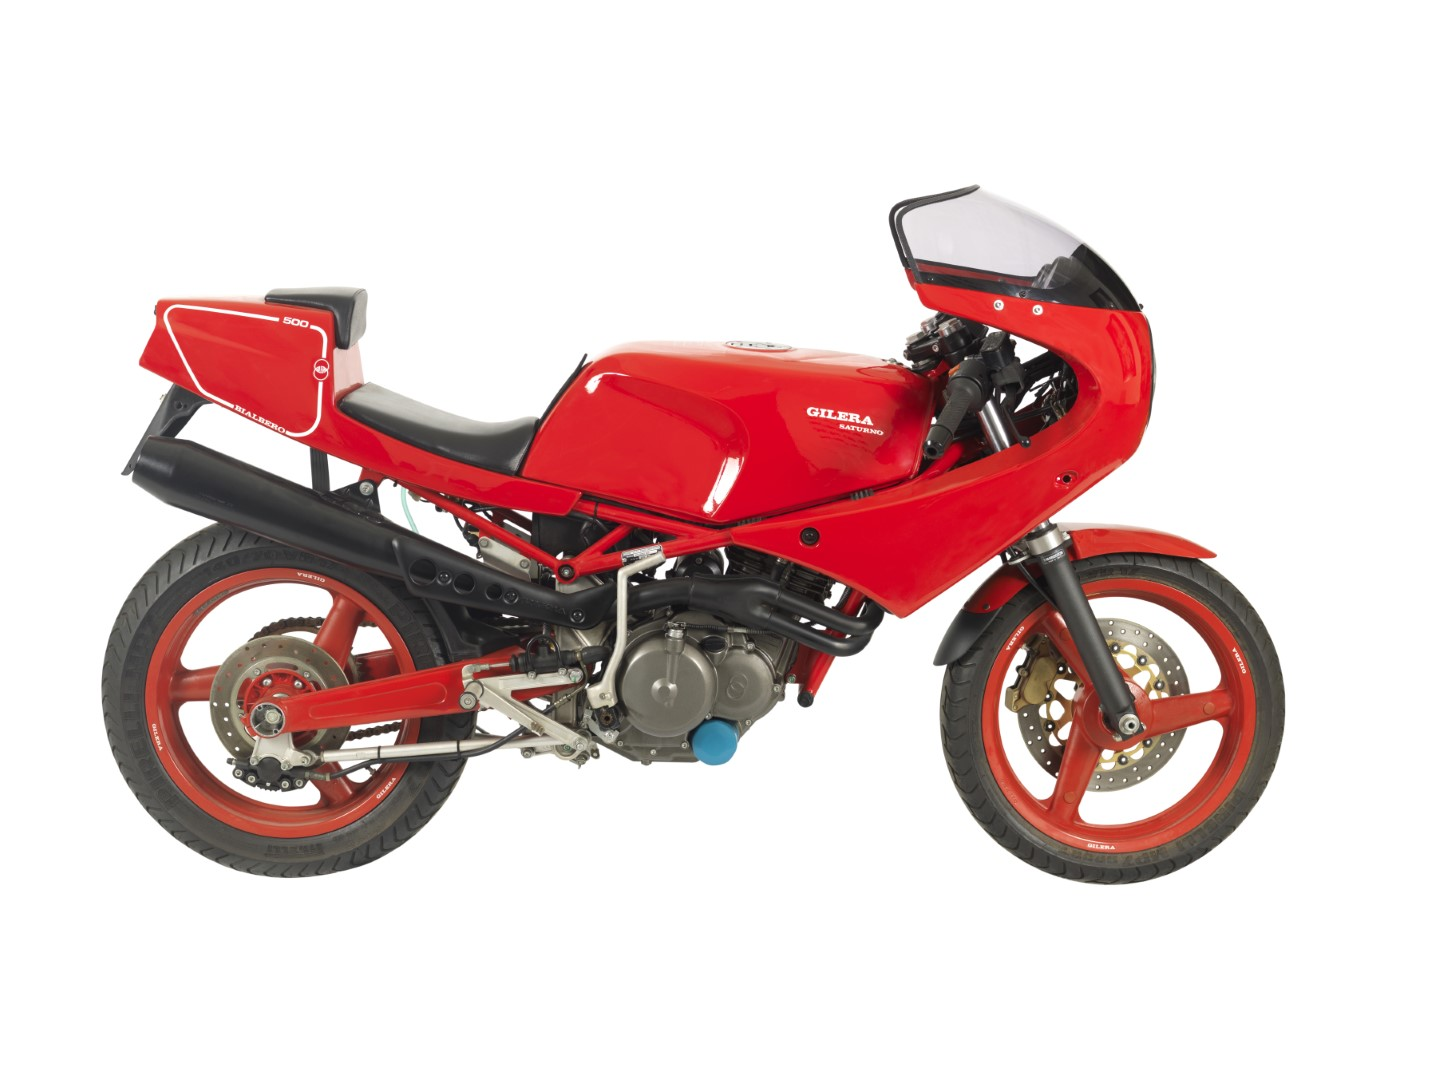 Featured Listing: Pristine 1990 Gilera Saturno Bialbero with 72kms!